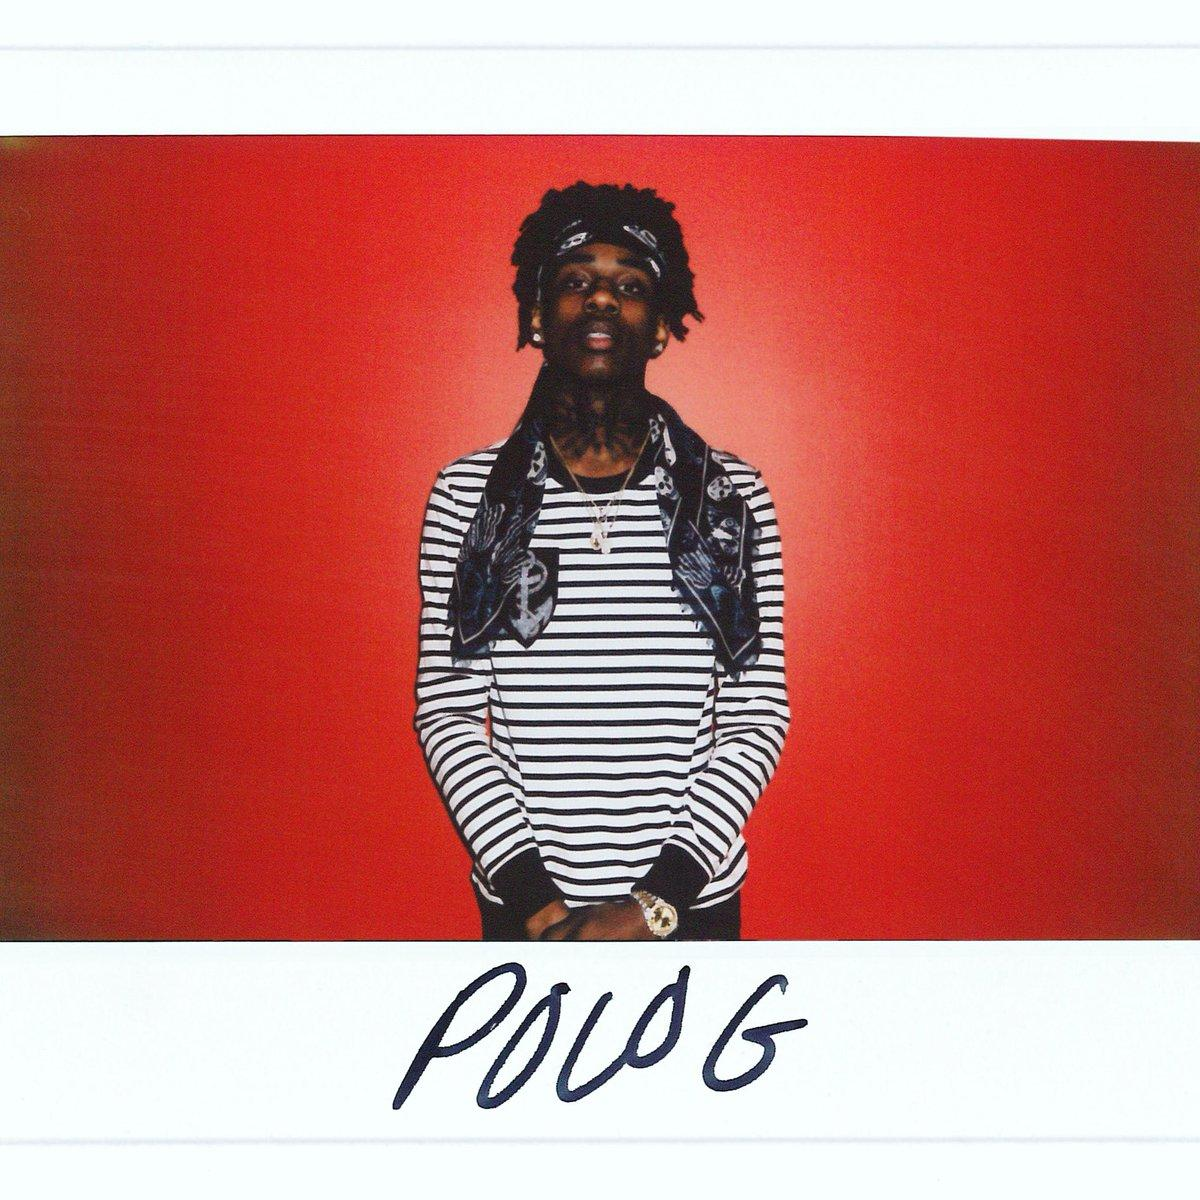 Polo G Wallpapers Wallpaper Cave